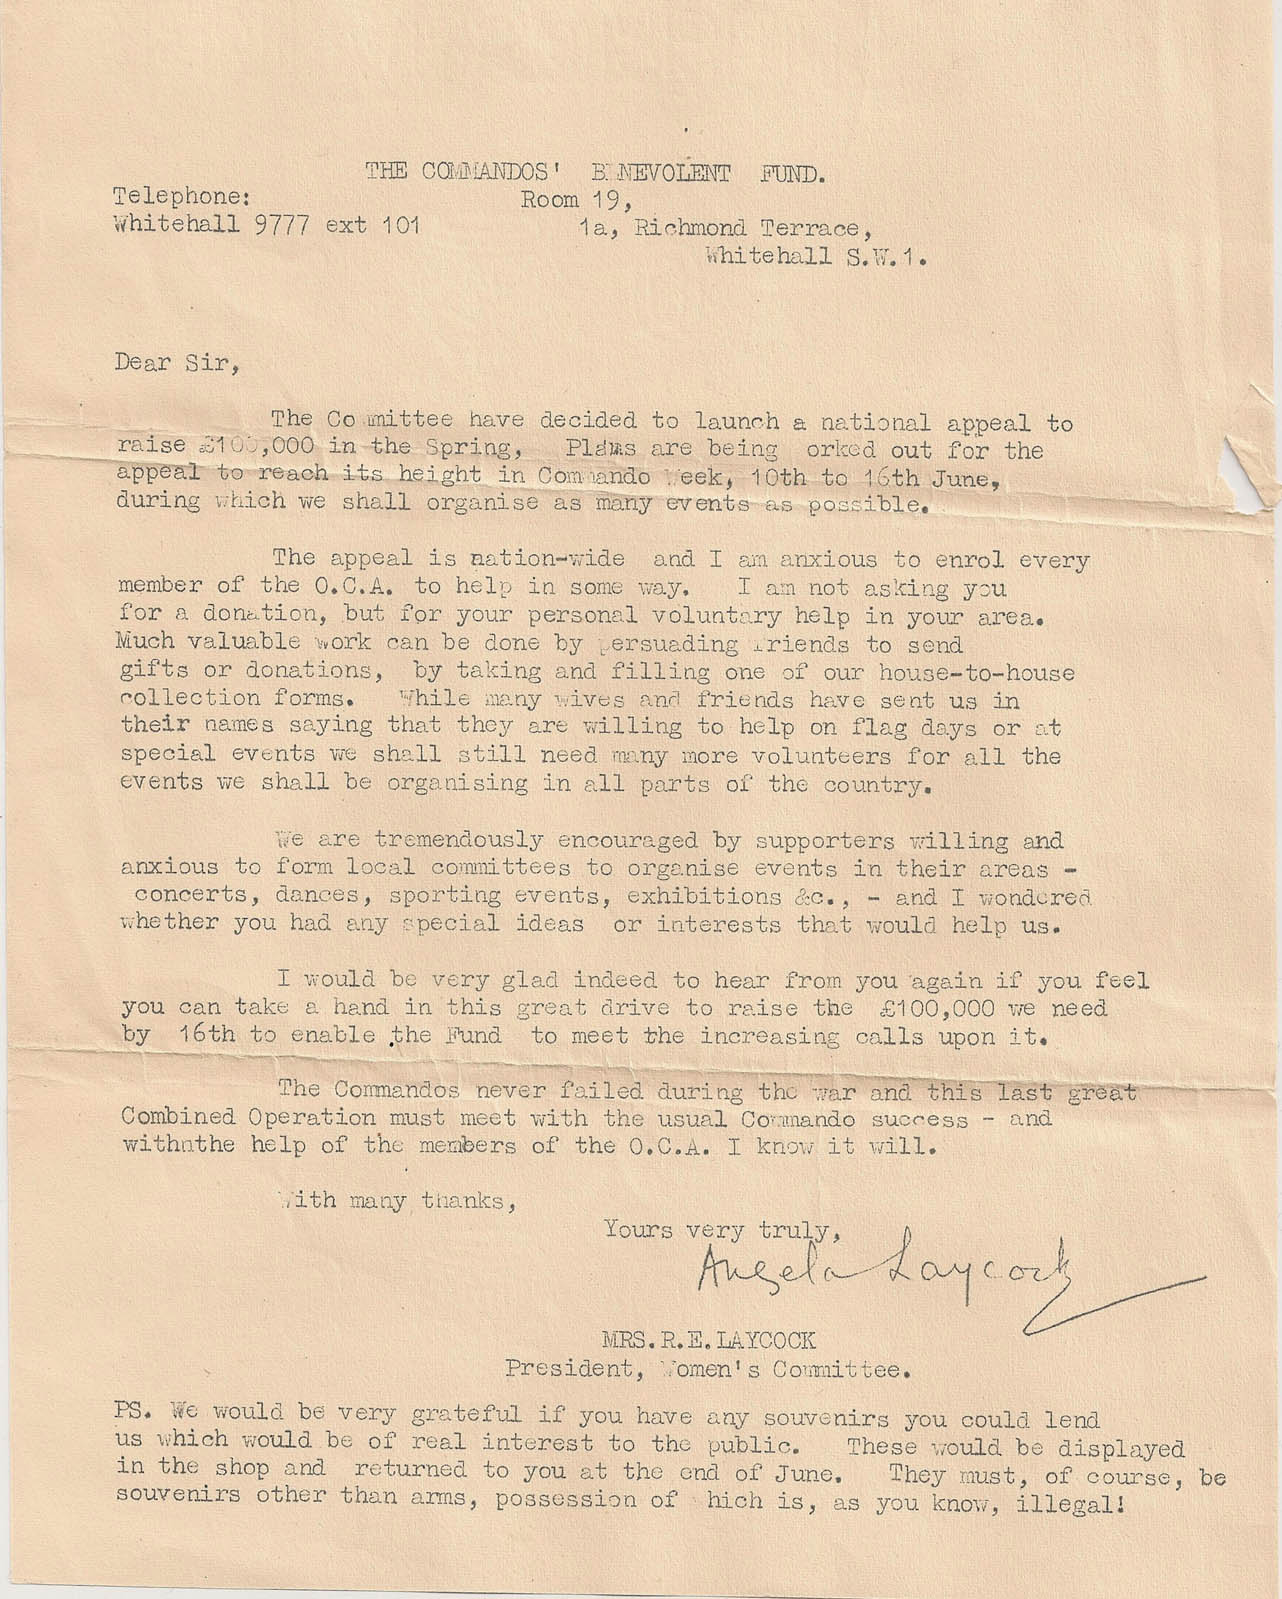 Appeal Letter To Raise Funds For The Commando Benevolent Fund